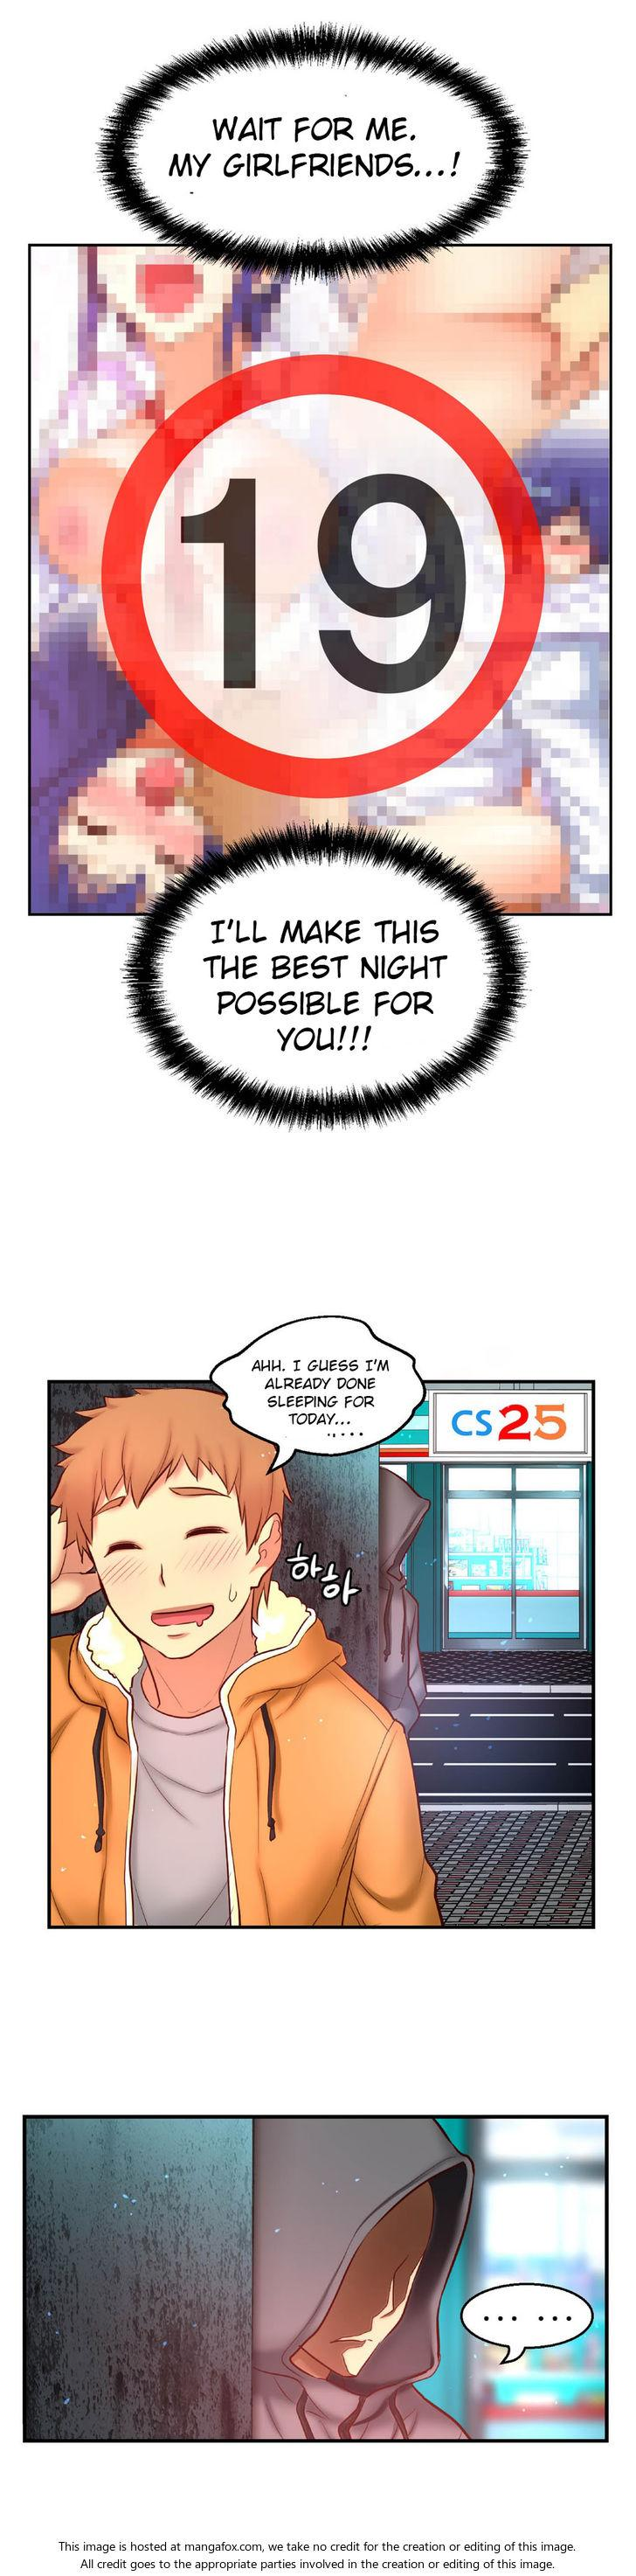 [Donggul Gom] She is Young (English) Part 1/2 1633